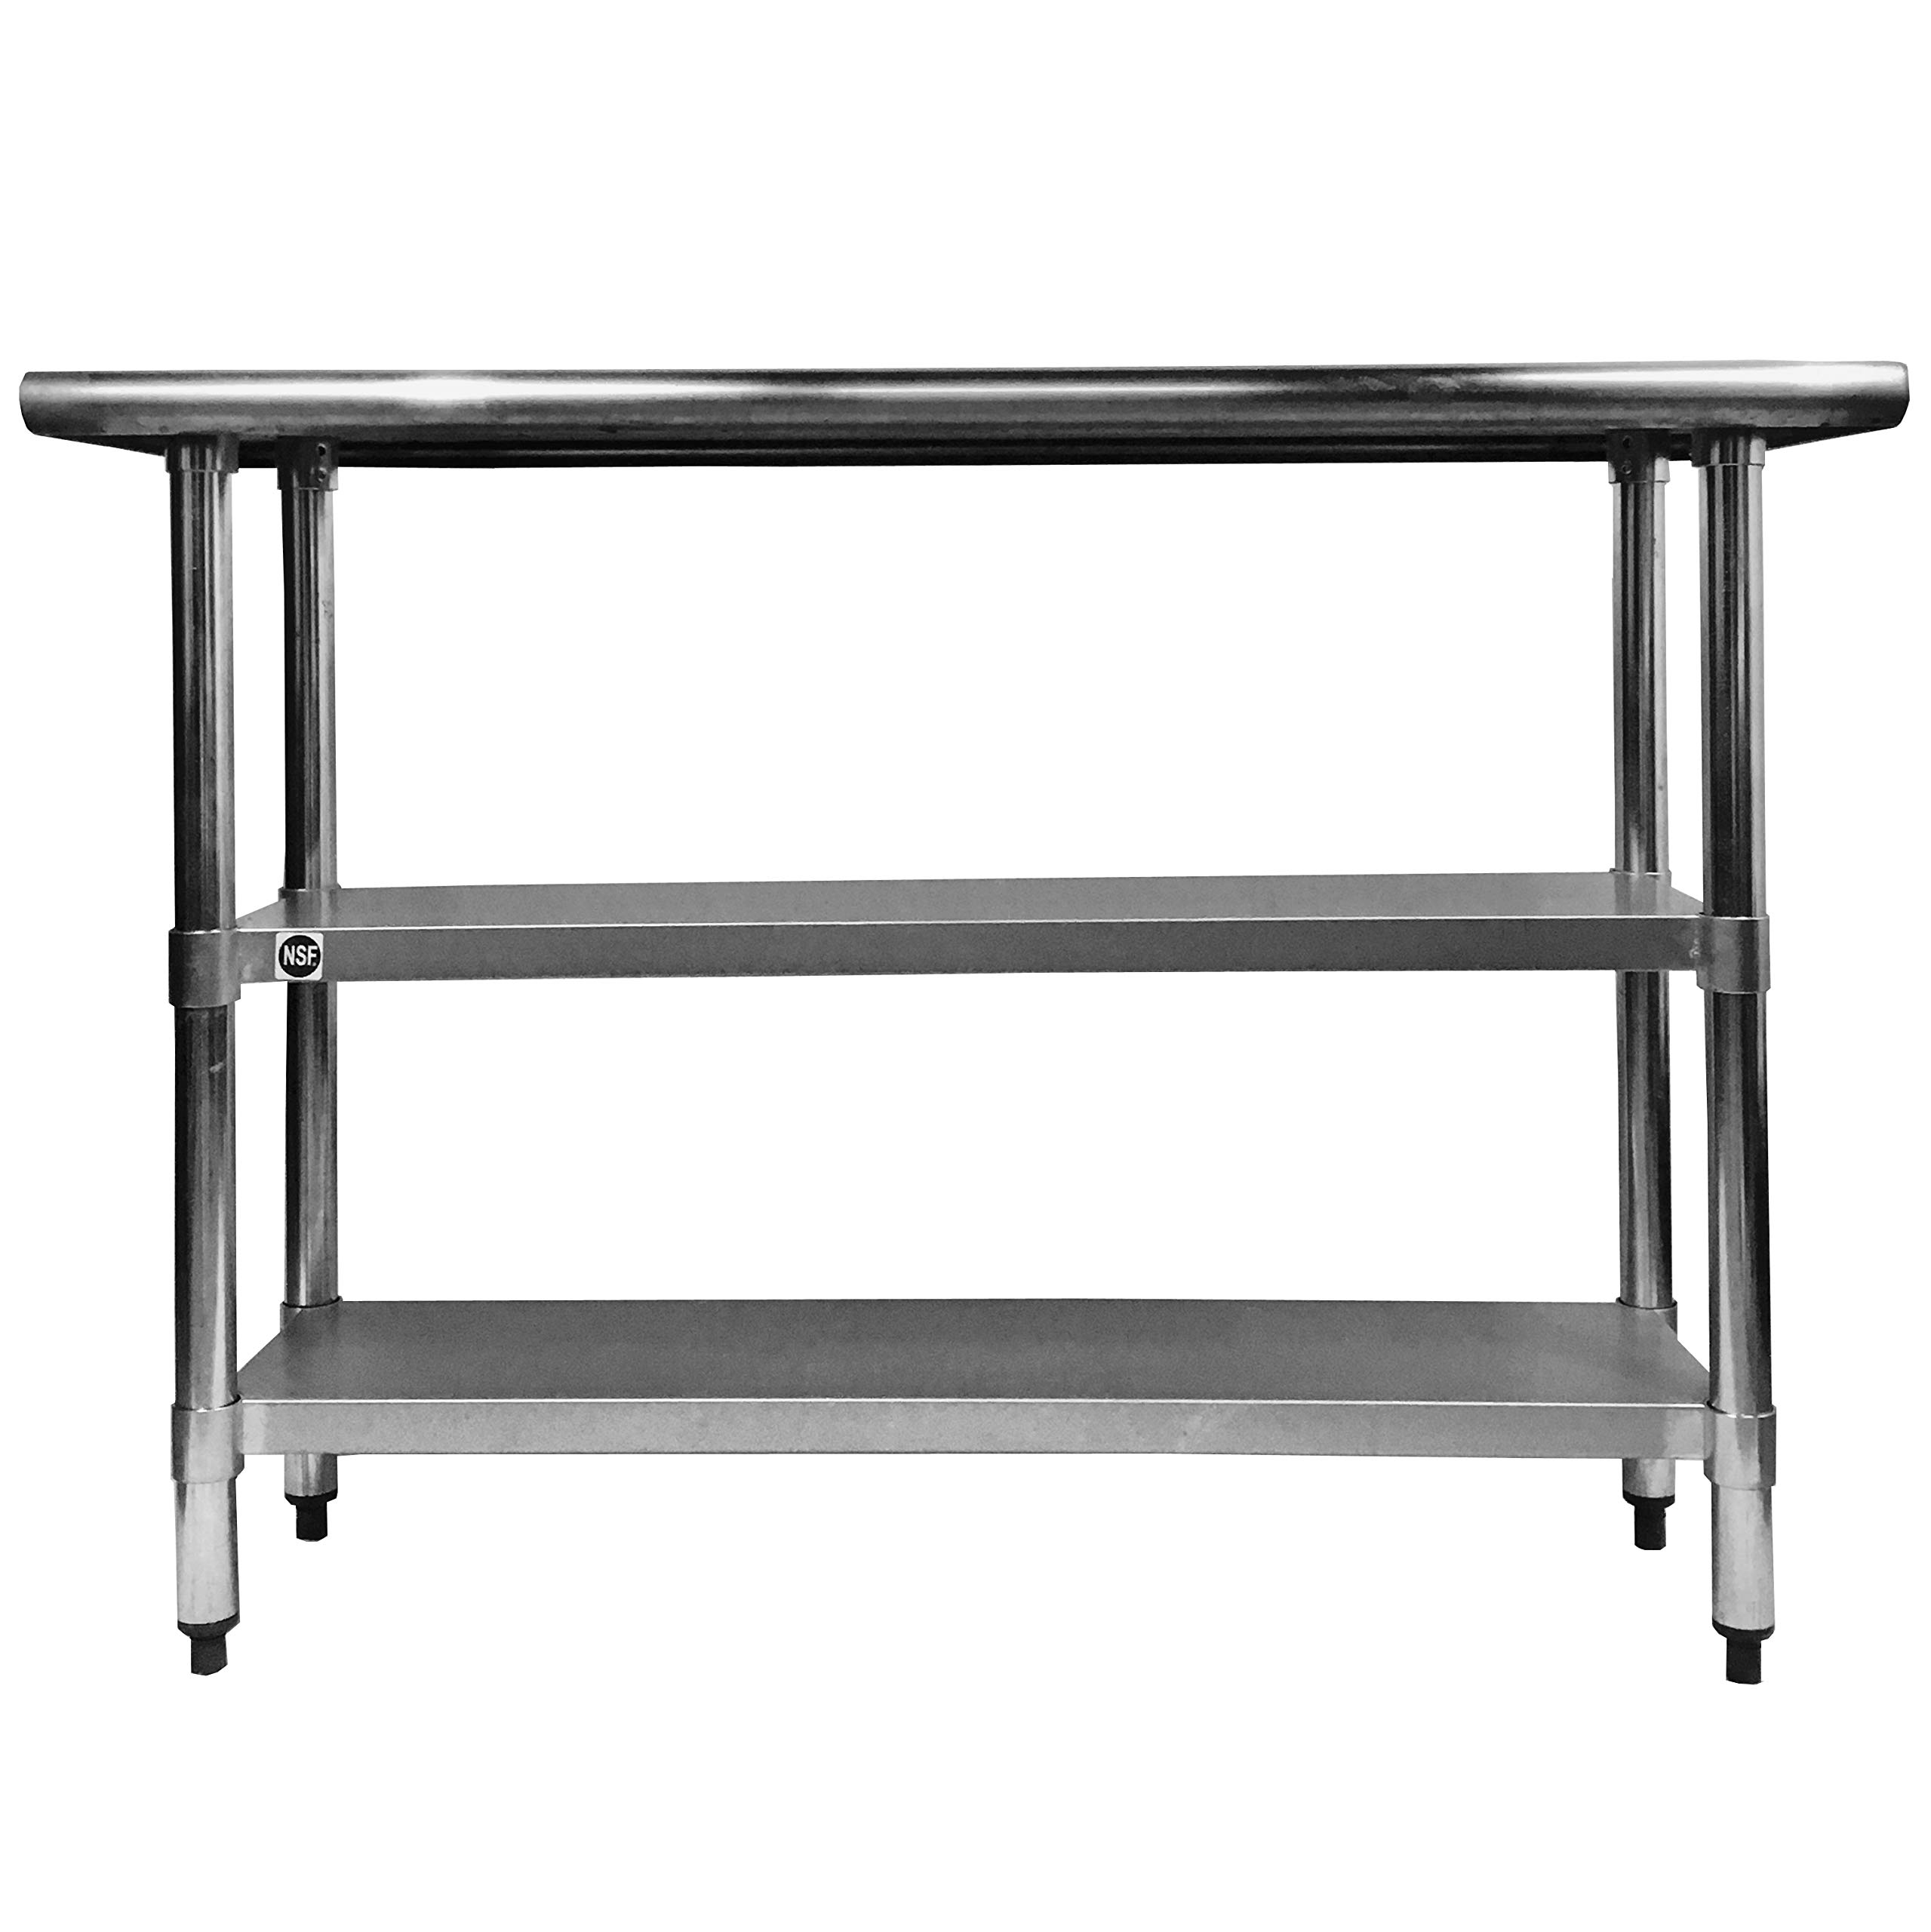 Stainless Steel Prep Work Table 18 x 60 with 2 undershelves NSF - Heavy Duty